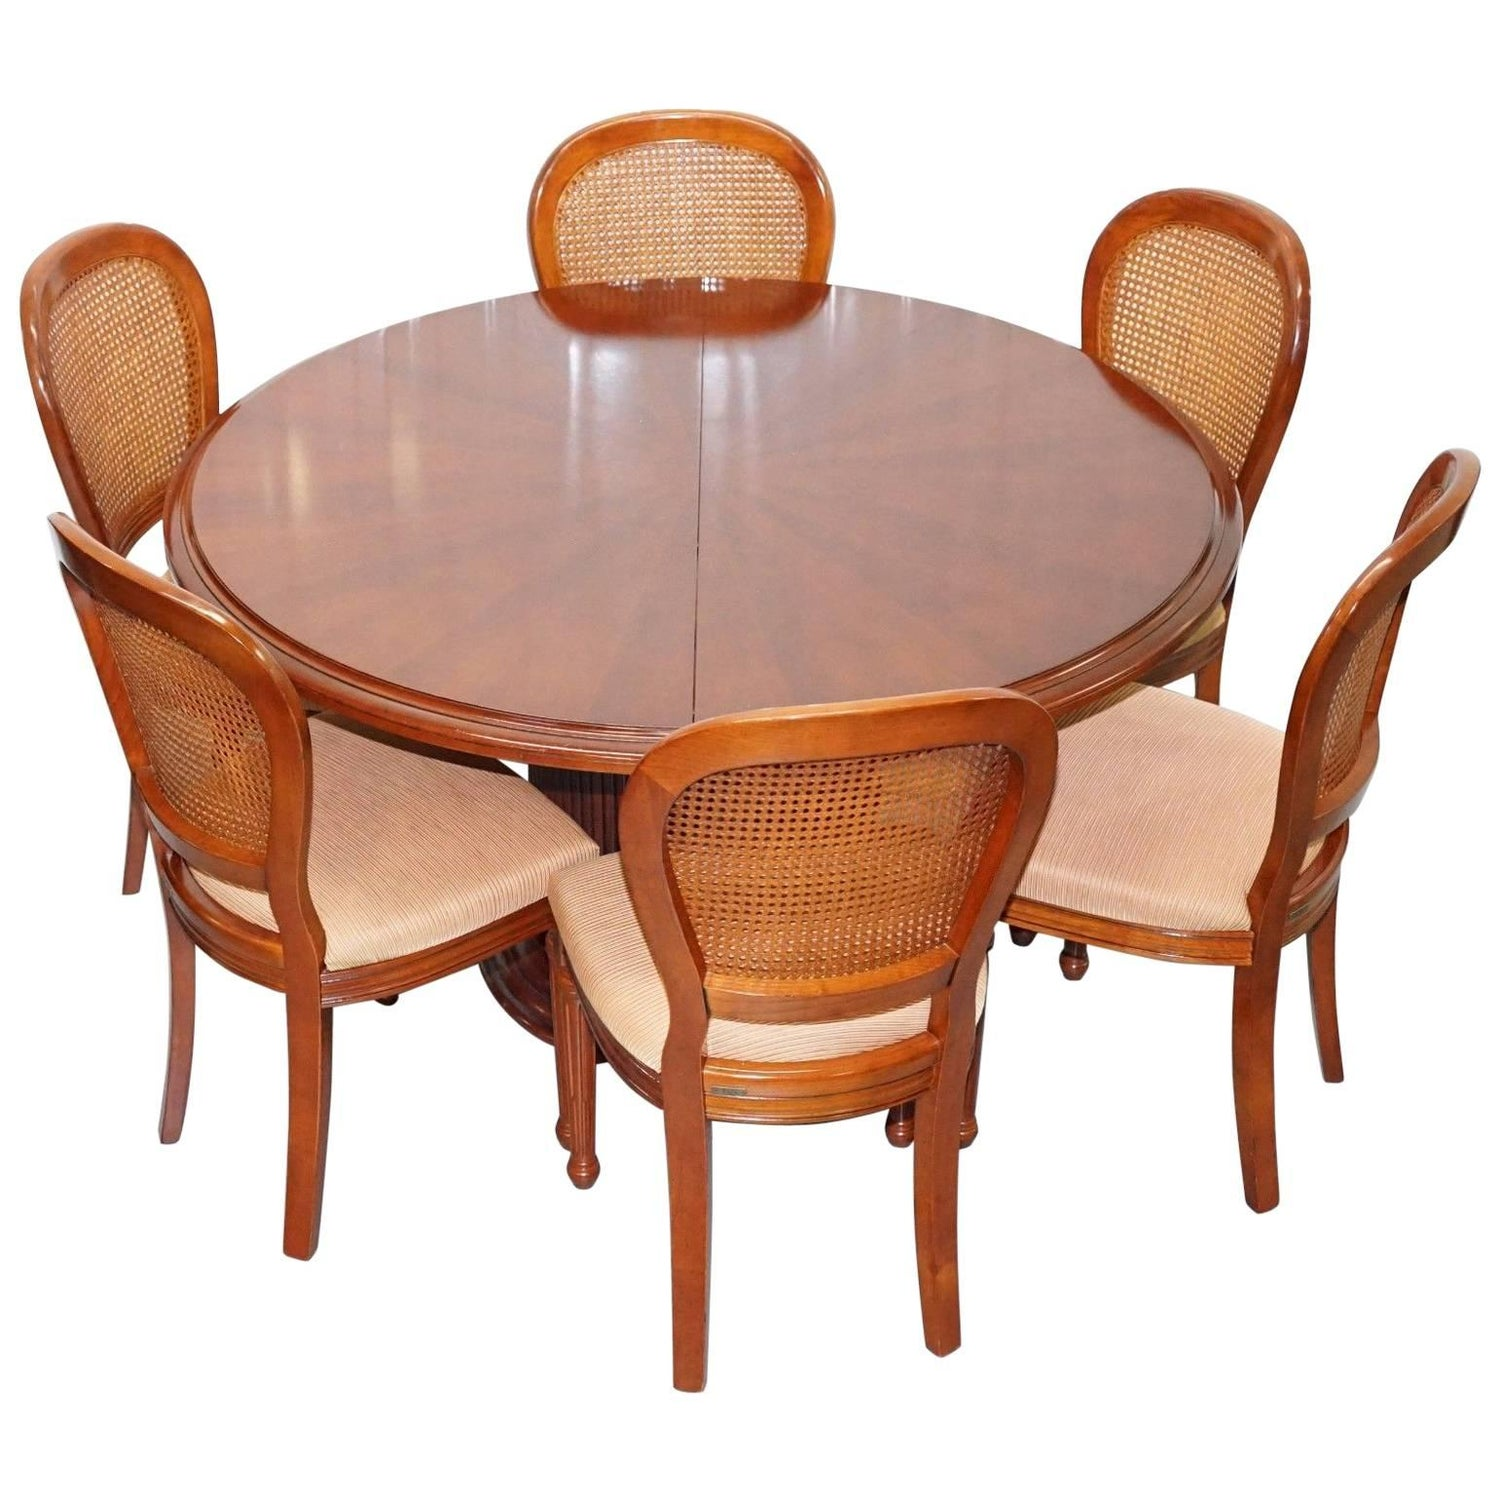 French Provincial Dining Room Sets 5 For Sale At 1stdibs # Table Grange France